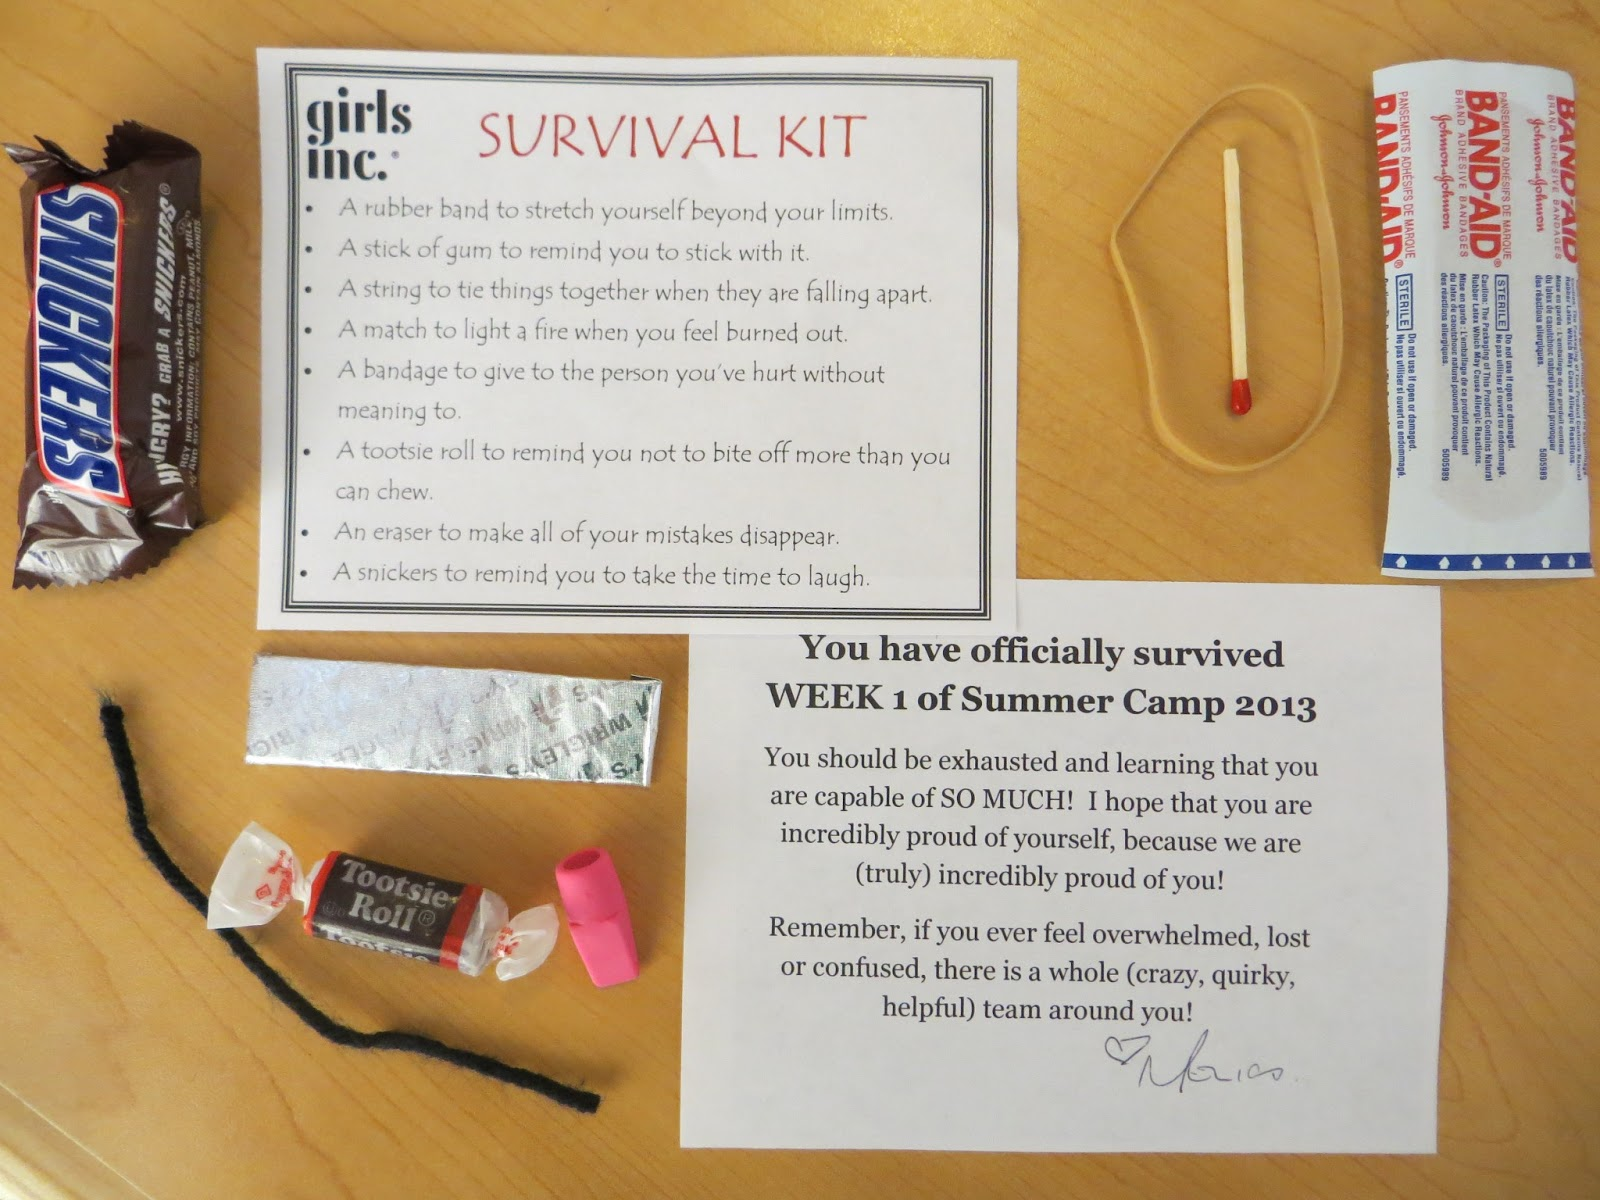 Survival kit gift diy ever growing farm ever growing farm survival kit gift diy solutioingenieria Gallery